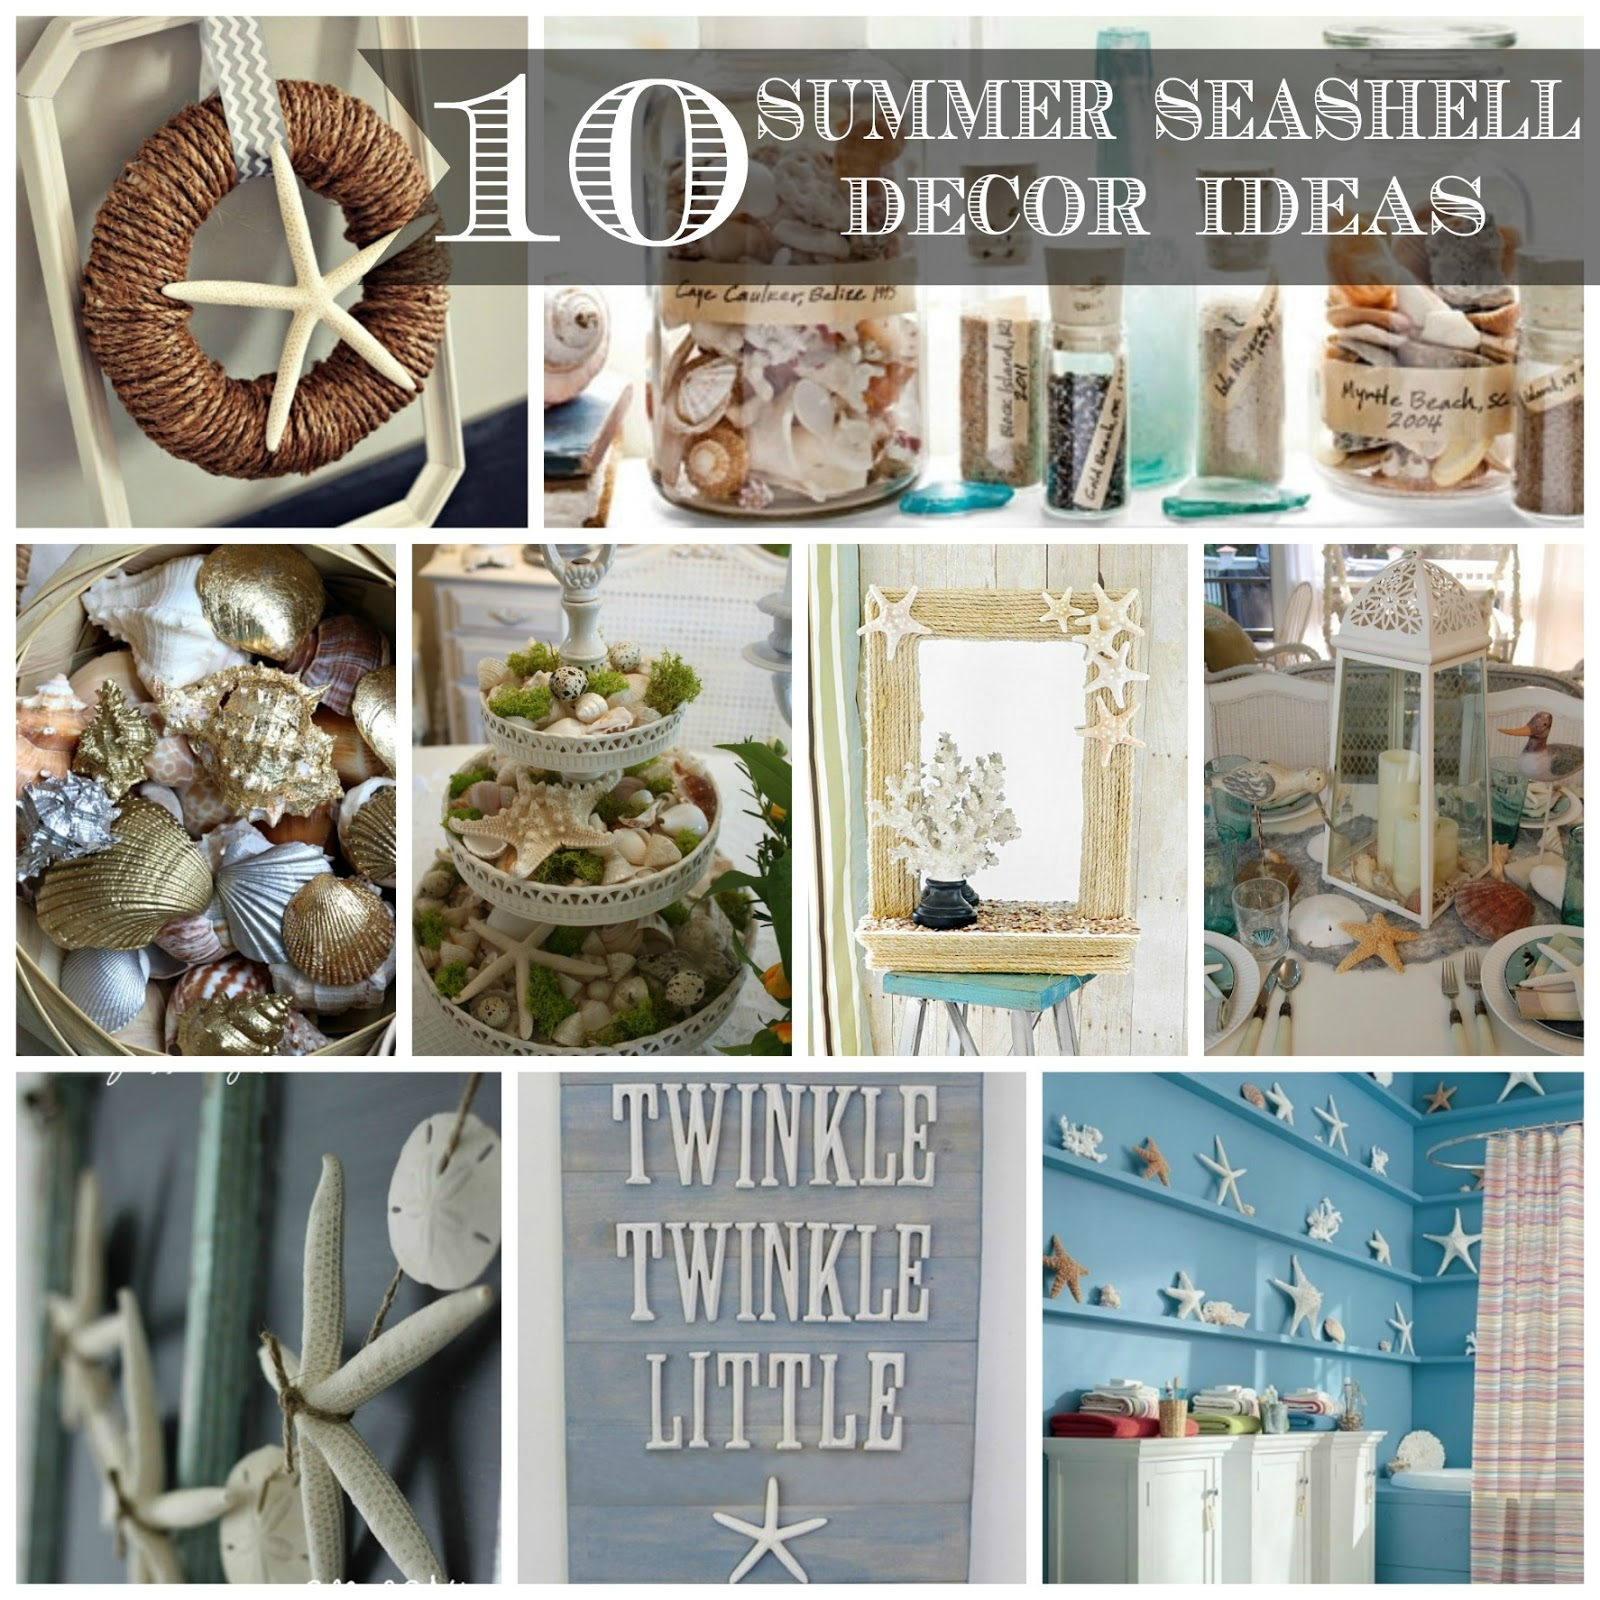 Seashell Bedroom Decor 10 Summer Seashell Decor Ideas